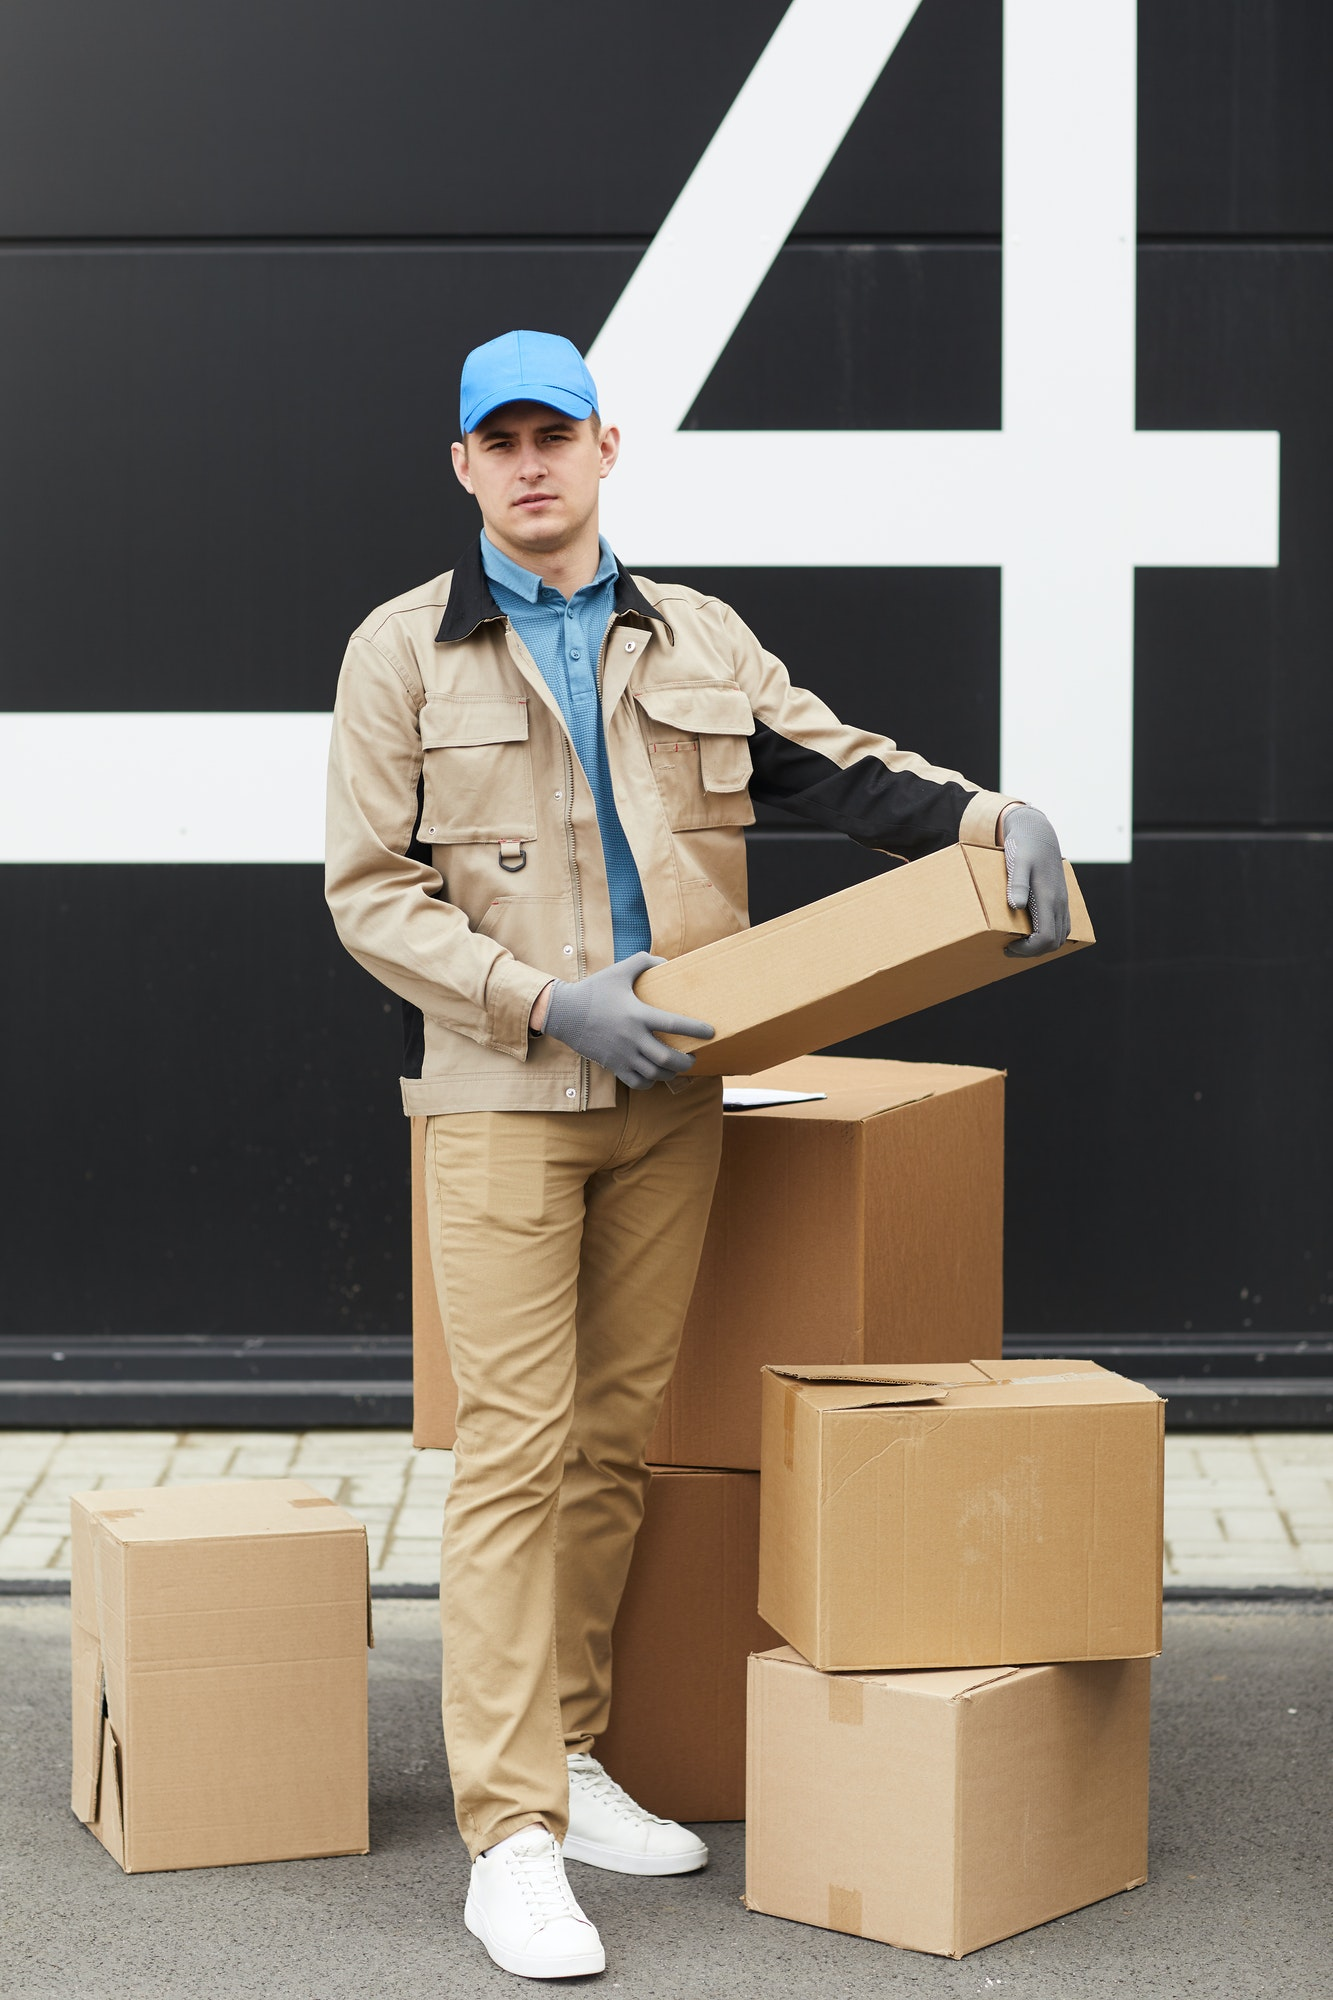 courier-working-with-parcels-in-warehouse.jpg